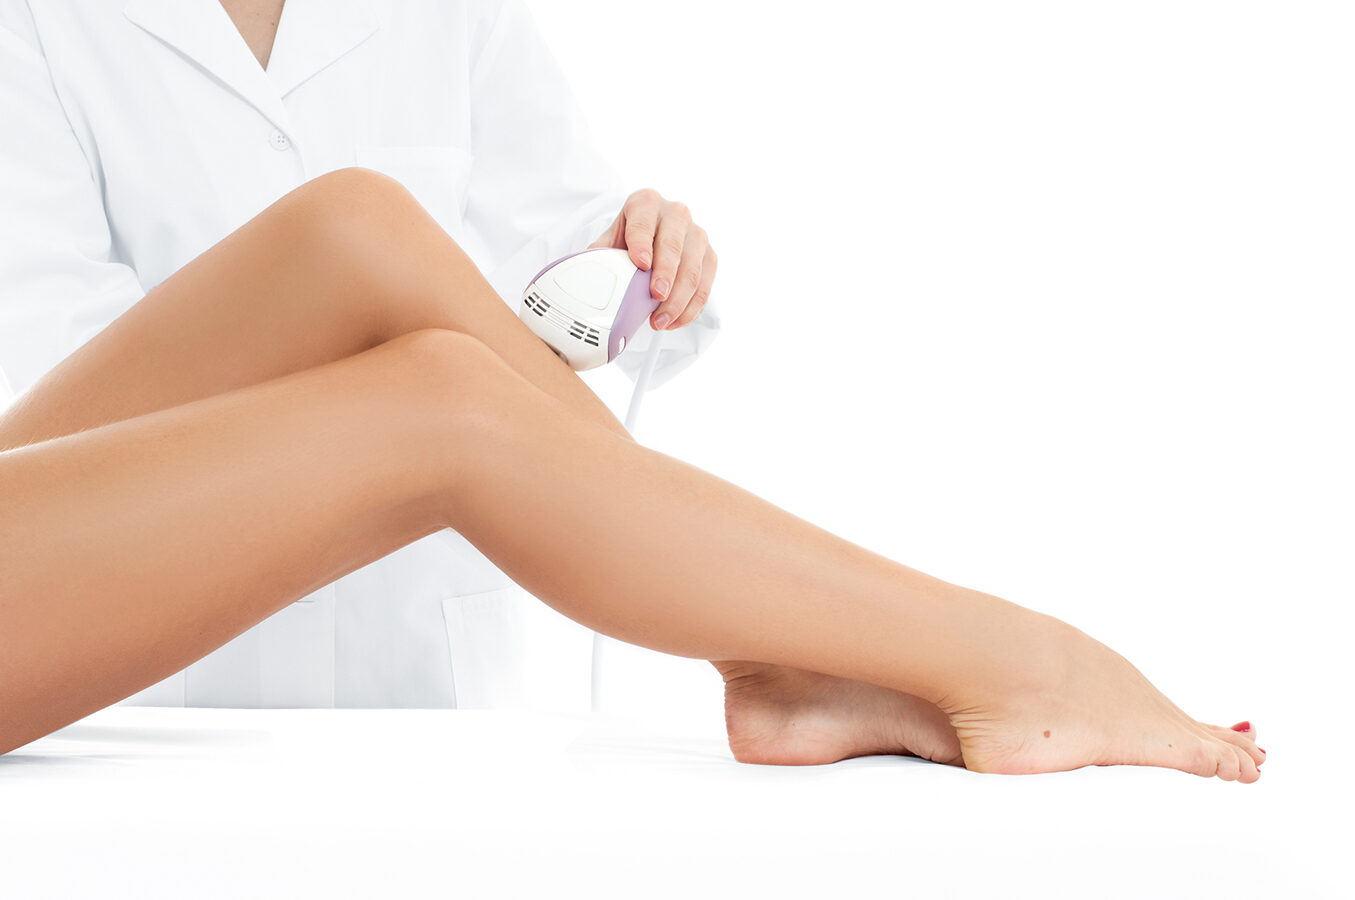 Hair Laser Removal with No Pain in London